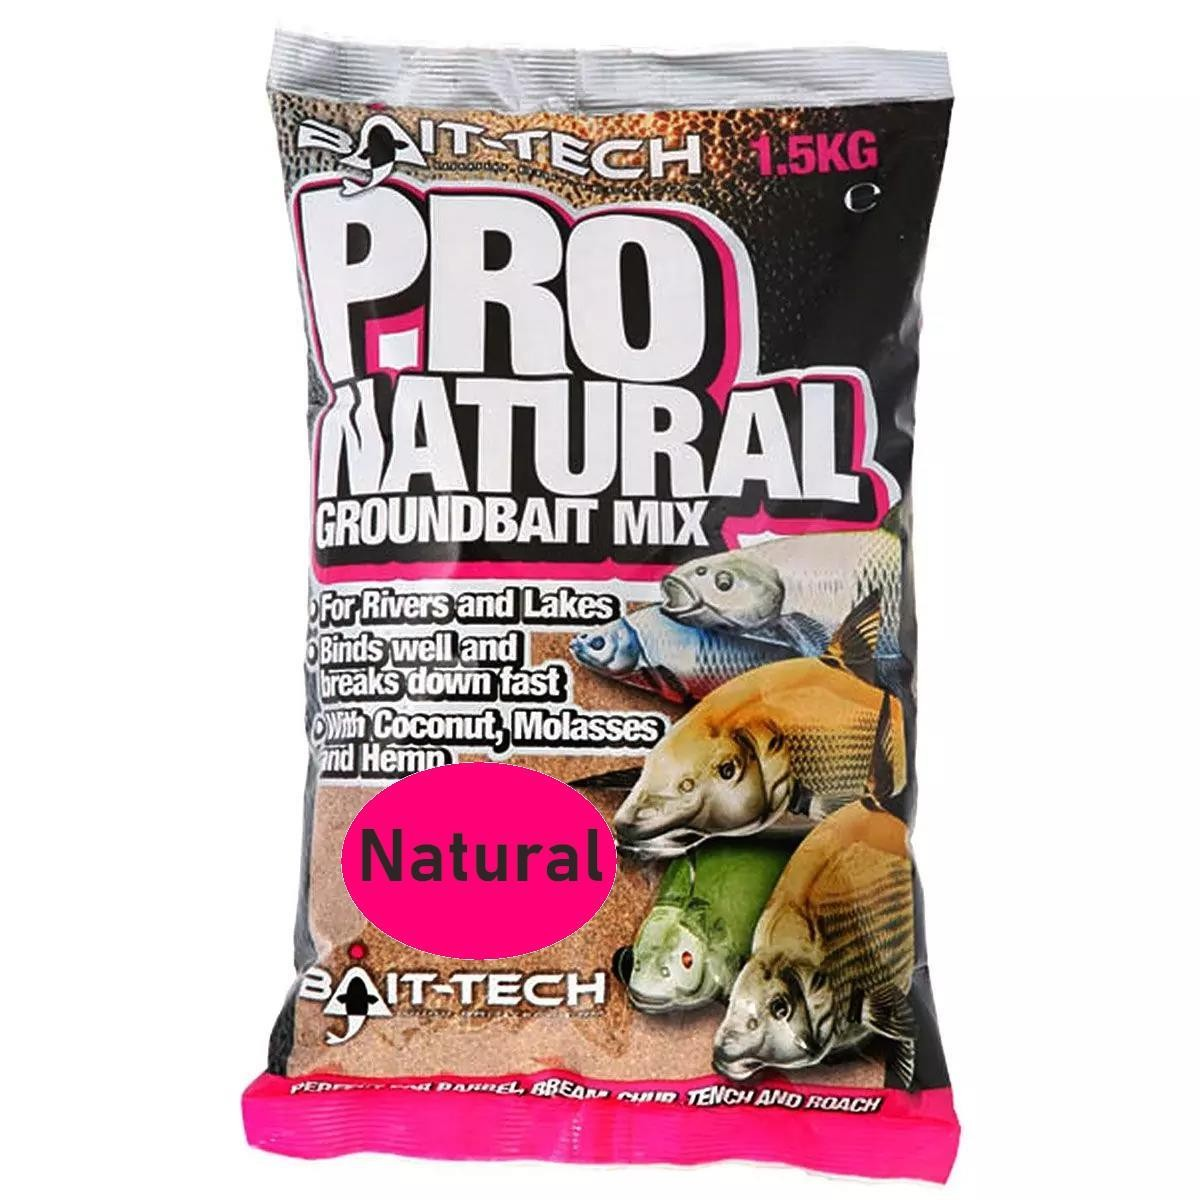 Bait-Tech Pro Natural Groundbait 1.5kg - Natural